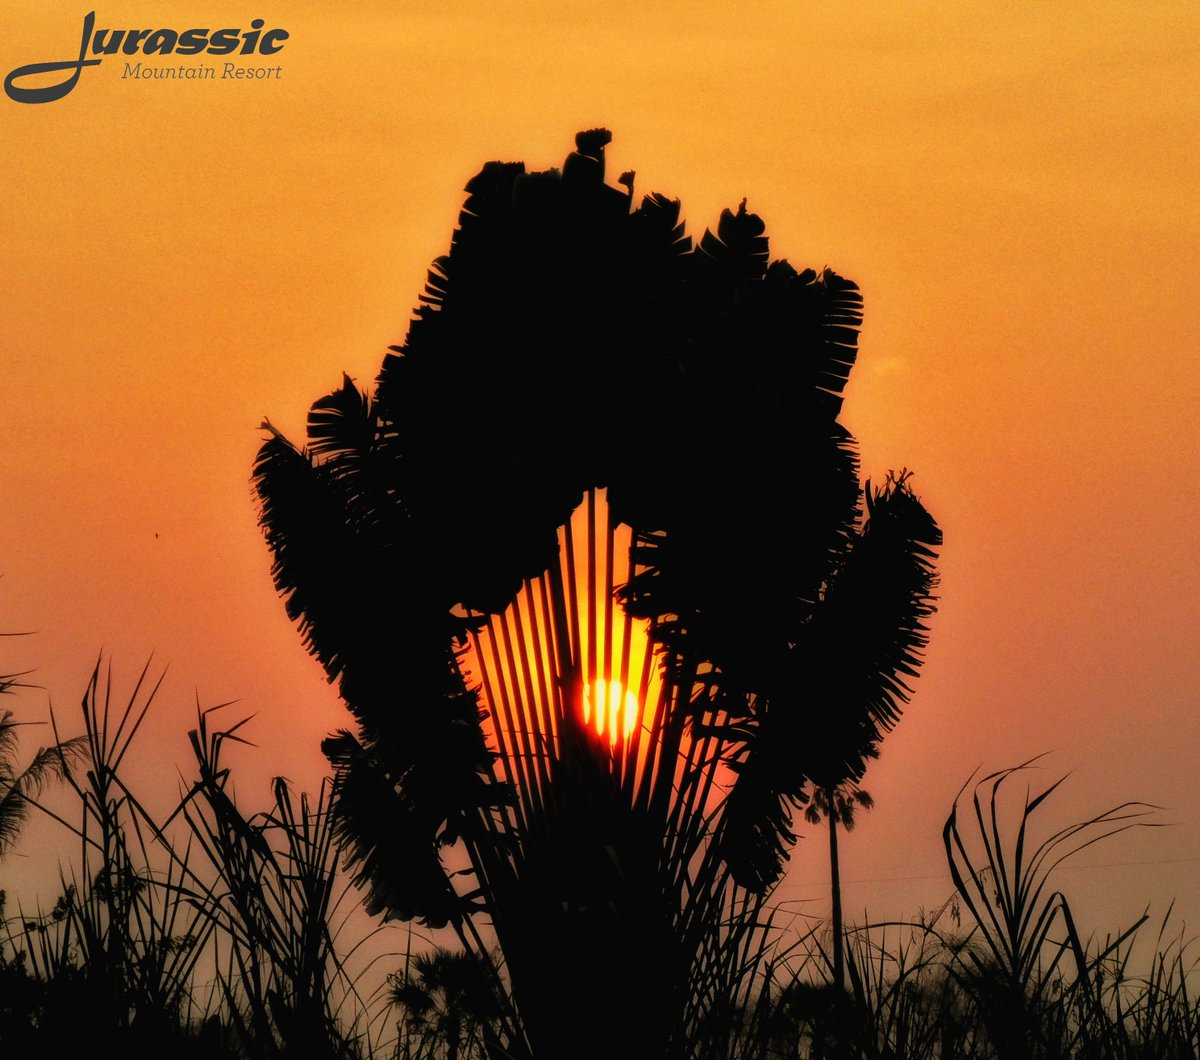 A fan palm tree silhouette cast against the remaining rays   http://www.jurassicfishingthailand.com   enquiries@jurassicfishingthailand .com  #garden  #home  #birds  #morning   #wildlife  #nature  #wildlifephotography  #photography  #park